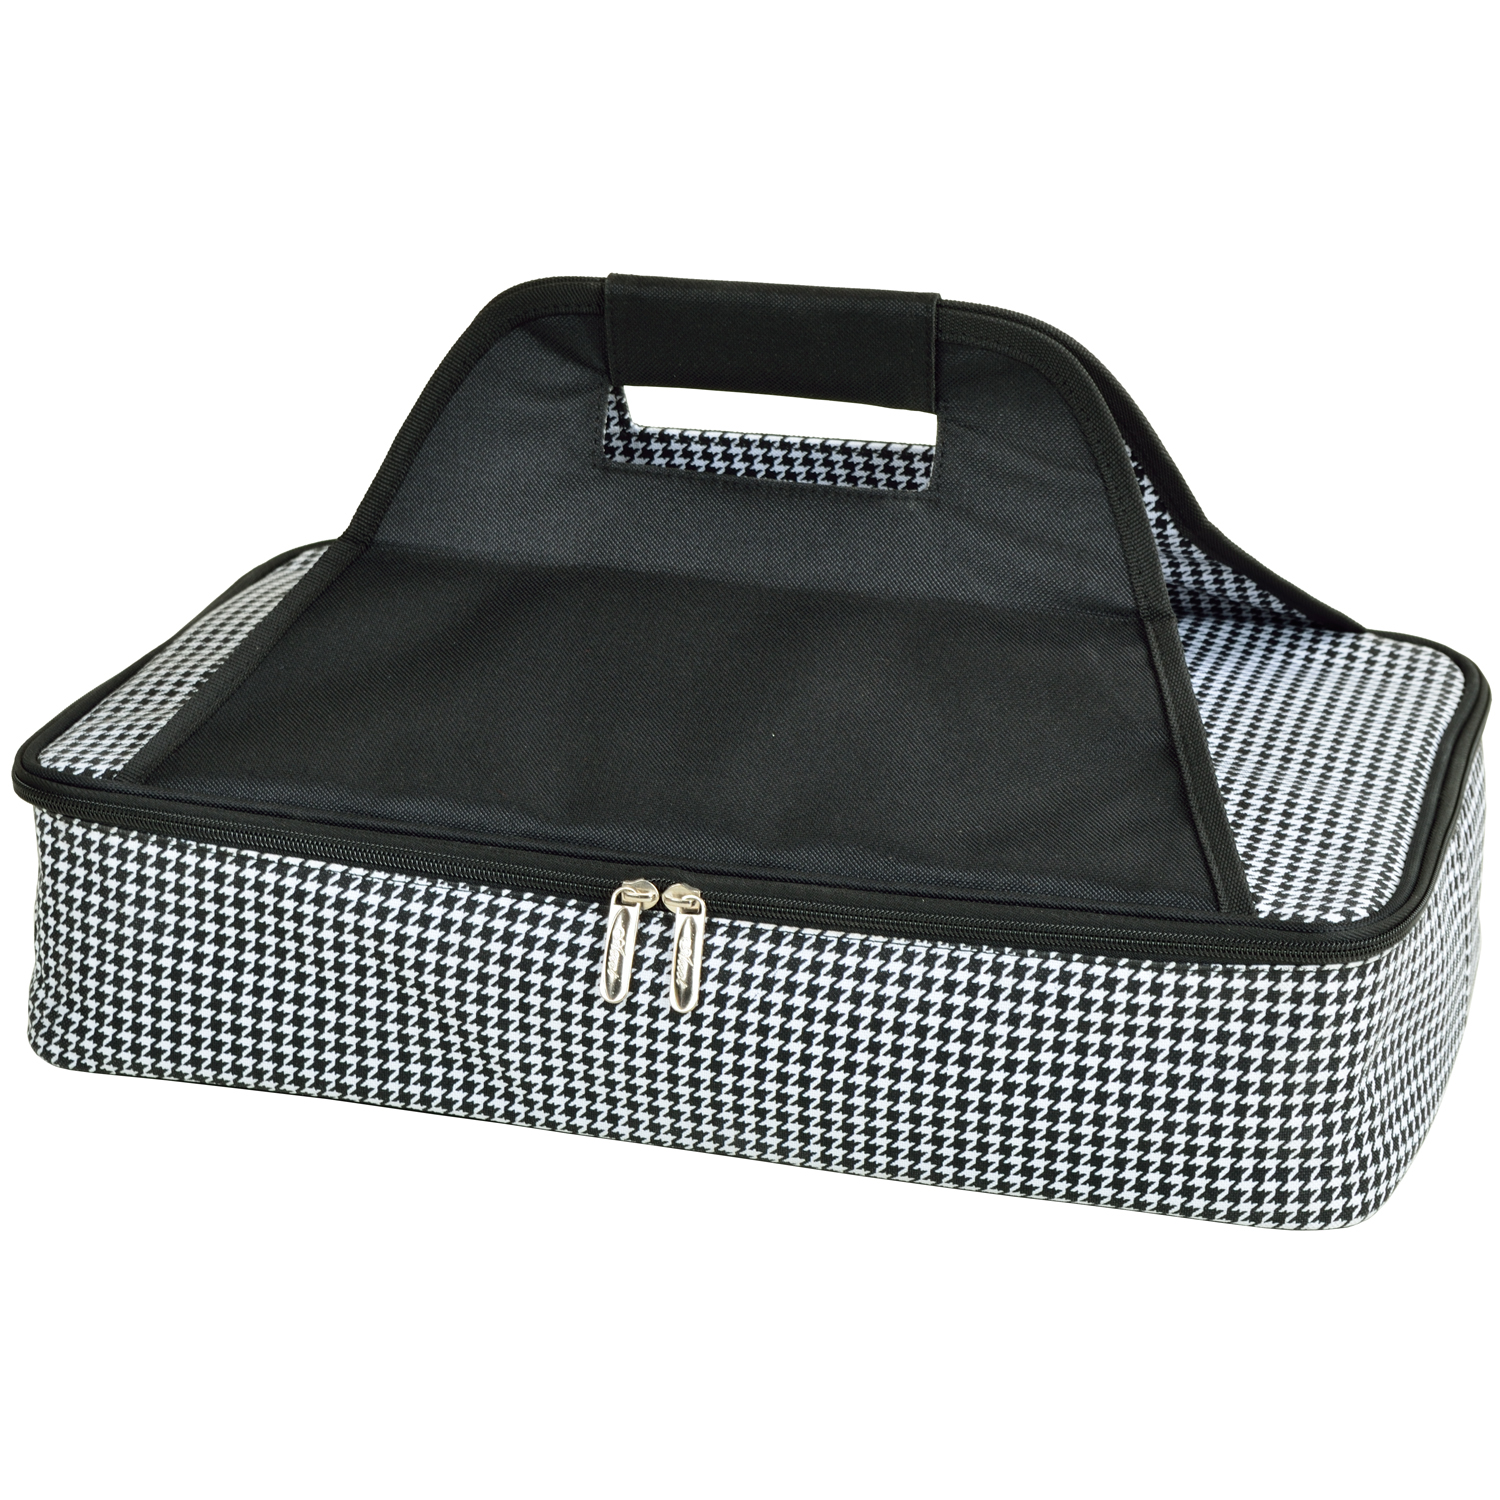 Picnic at Ascot Insulated Casserole Carrier  (530-HT)